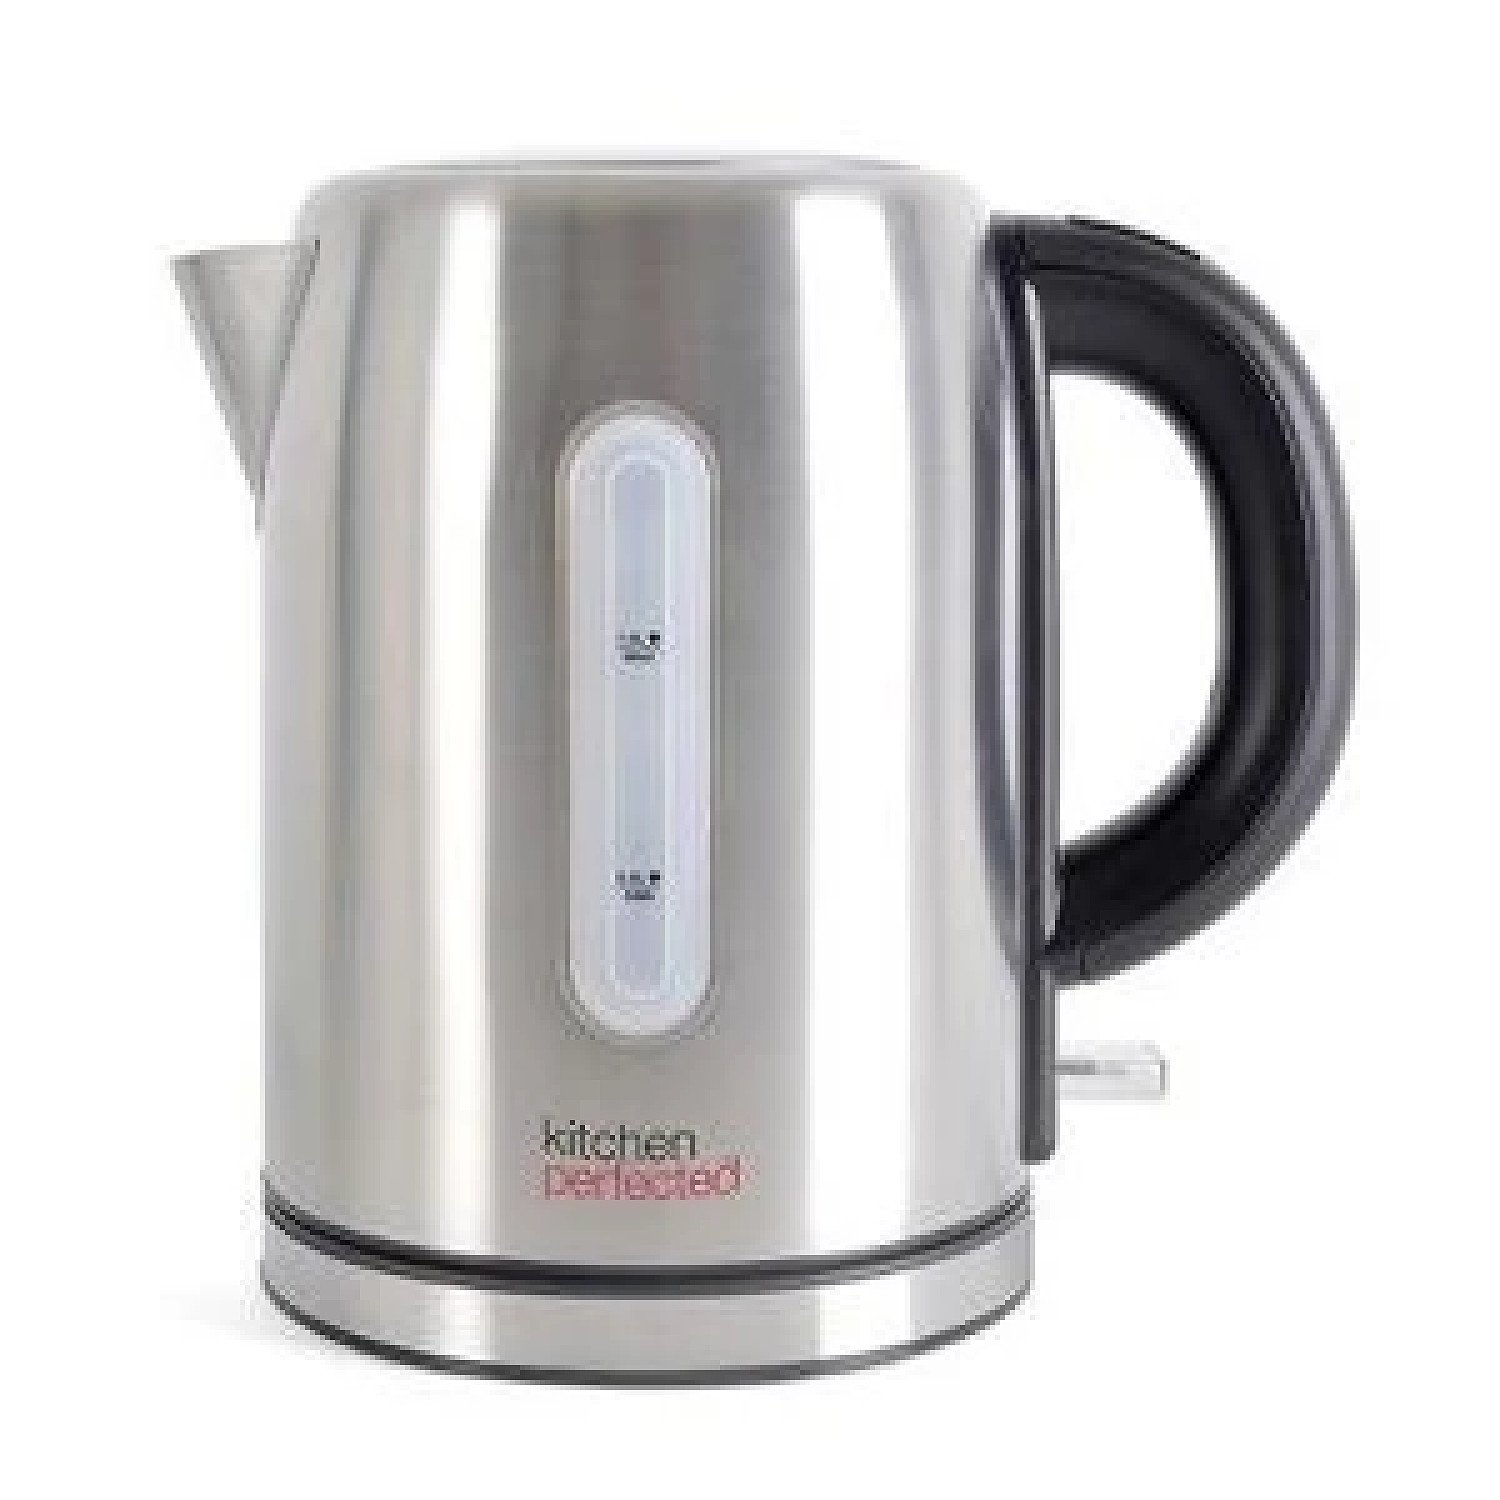 Kitchen perfected 1.0lt Brushed Steel Cordless kettle Free Postage